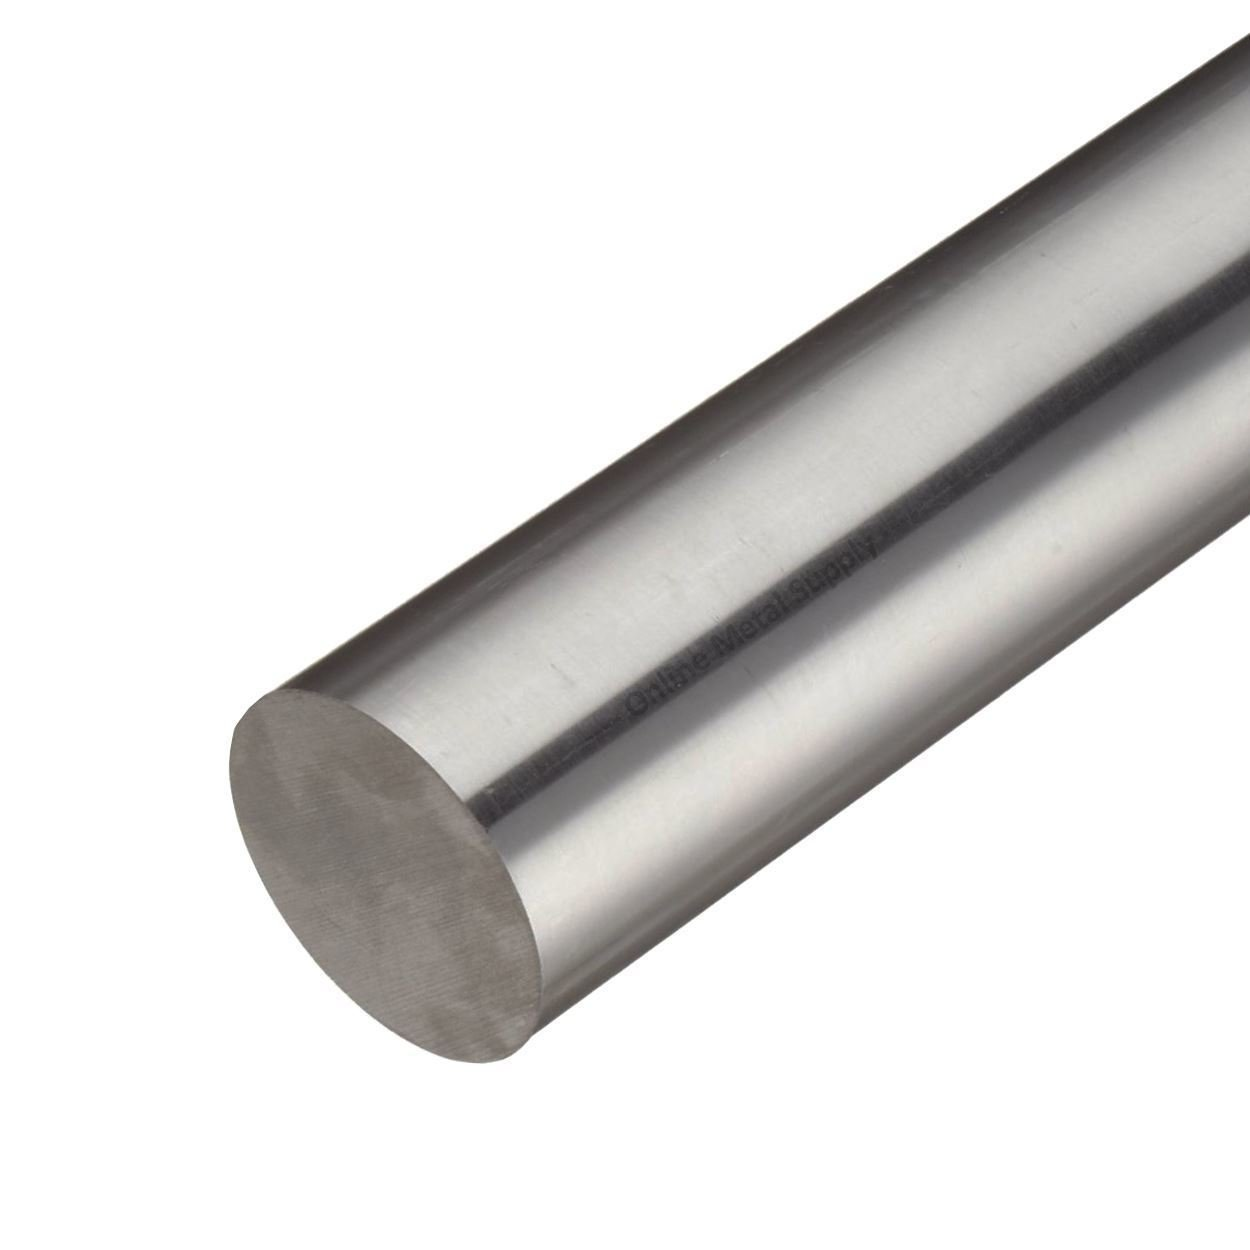 Online Metal Supply Alloy 718 Nickel Round Rod, 0.625 (5/8 inch) x 12 inches by Online Metal Supply